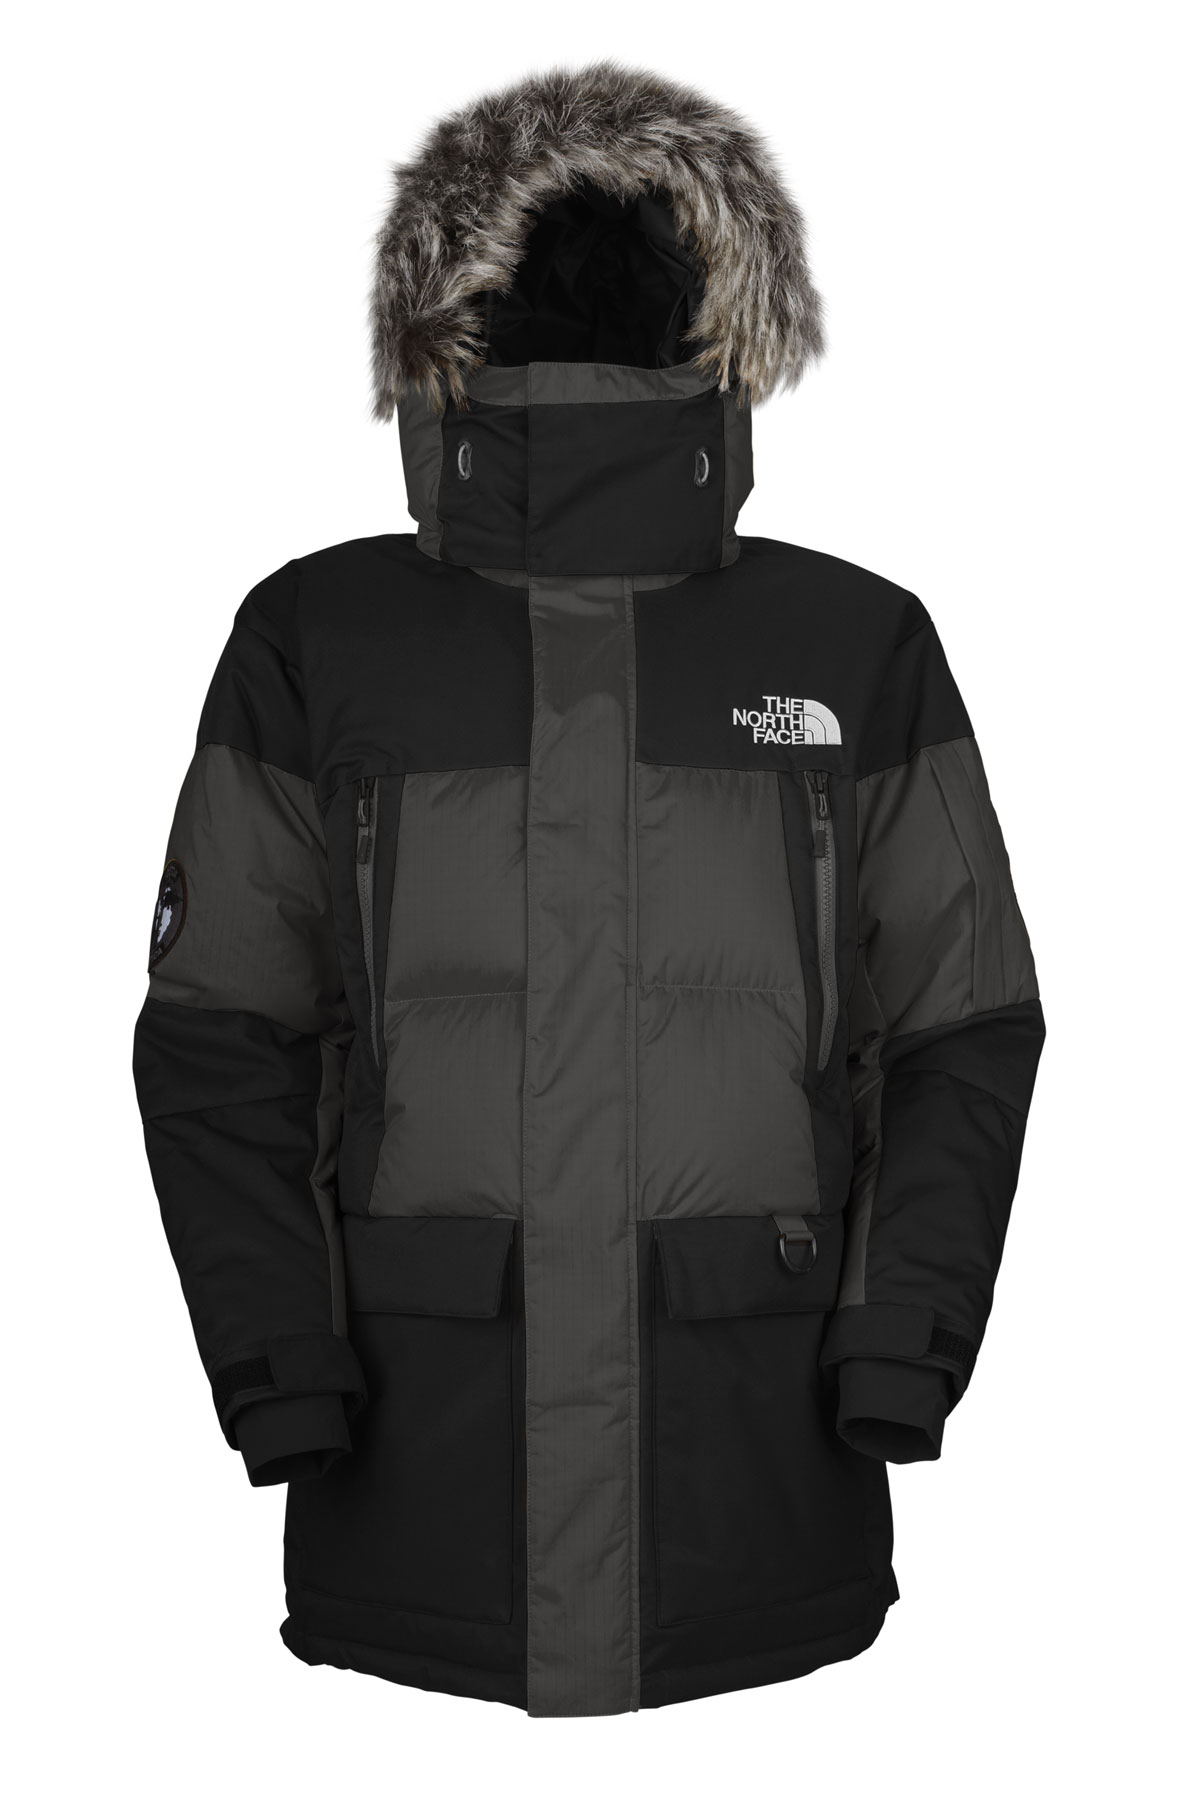 0686e302d The North Face Vostok Parka Men's at NorwaySports.com Archive